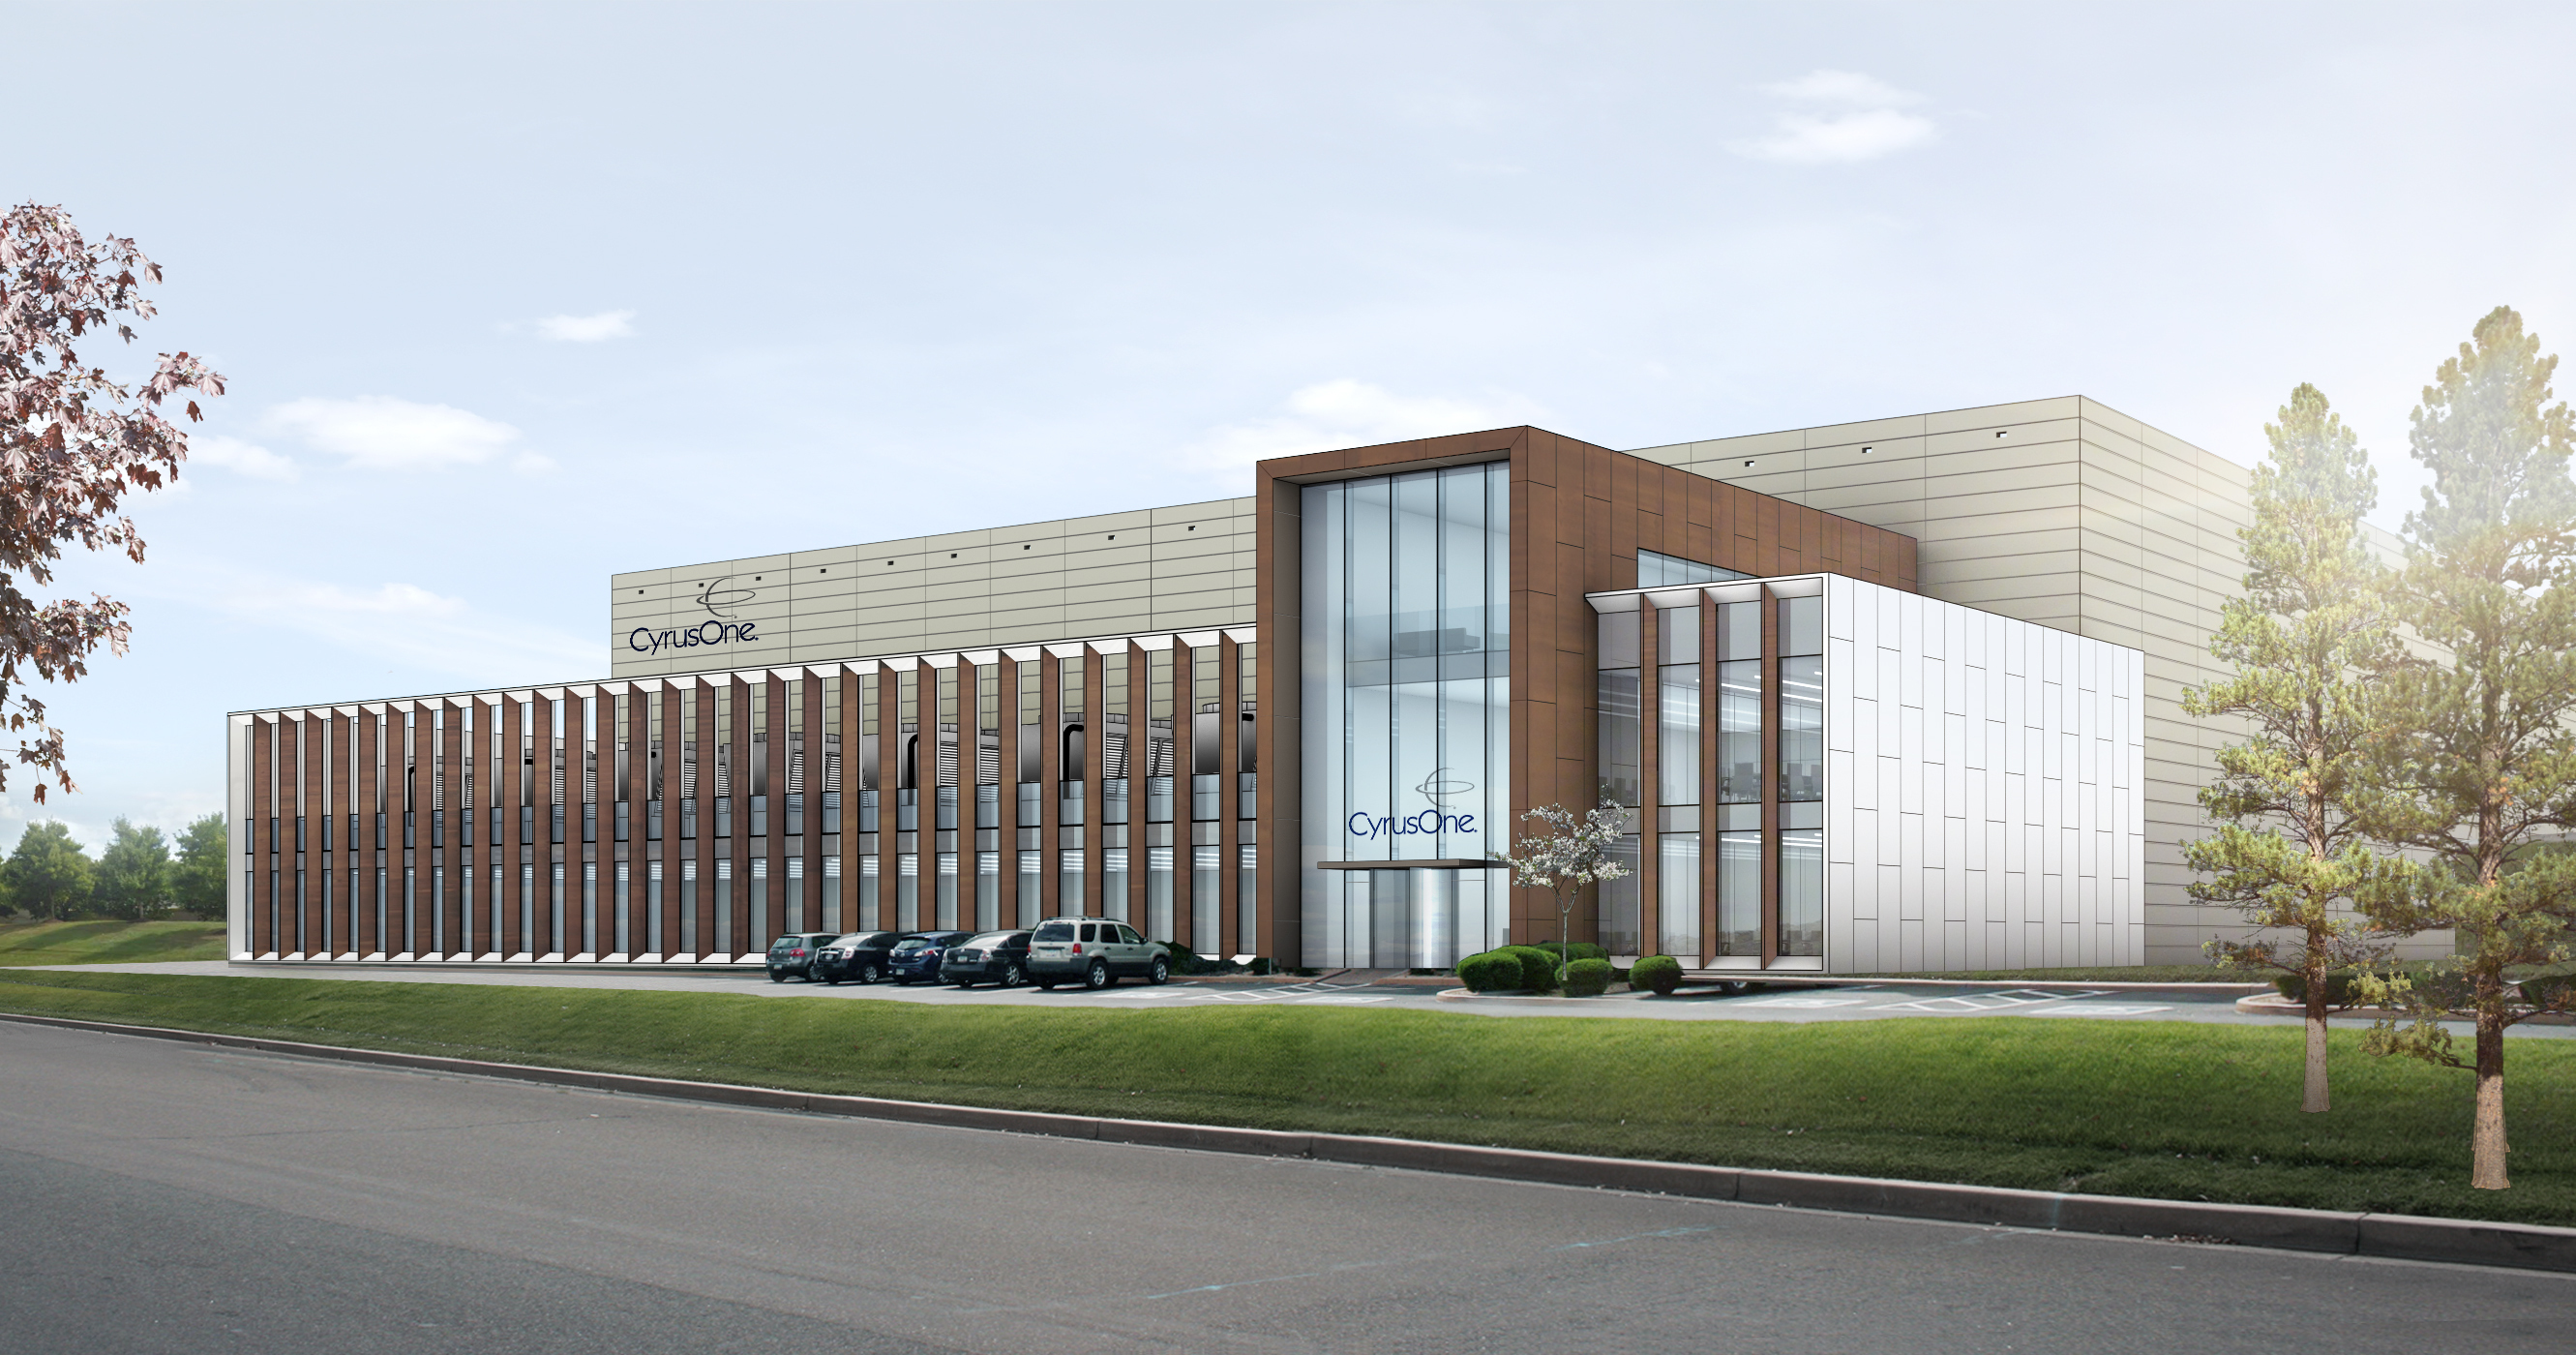 CyrusOne's new multi-tenant data center in Northern Virginia will include 240,000 sq ft of raised-floor space, 36,000 sq ft of Class A office space and up to 48 MW of critical load when completed. (Photo: Business Wire)